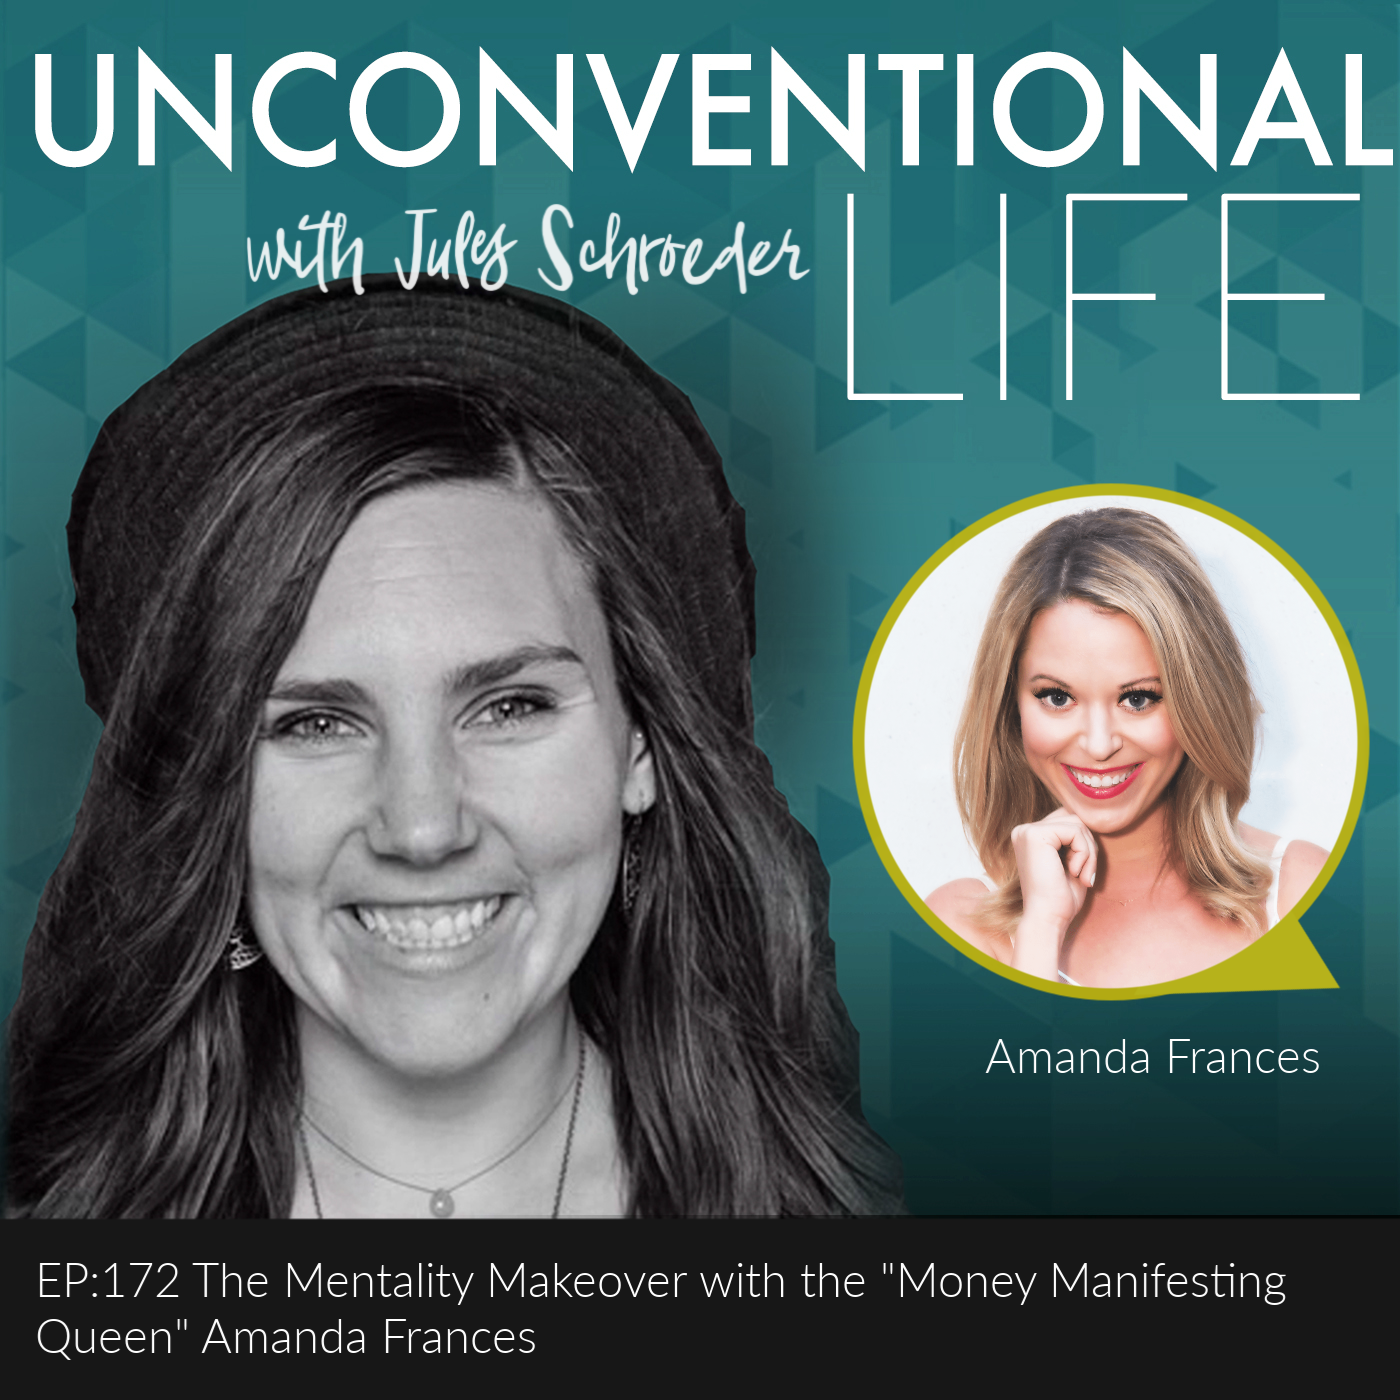 """EP: 172 The Mentality Makeover with """"Money Manifesting Queen"""" Amanda Frances"""